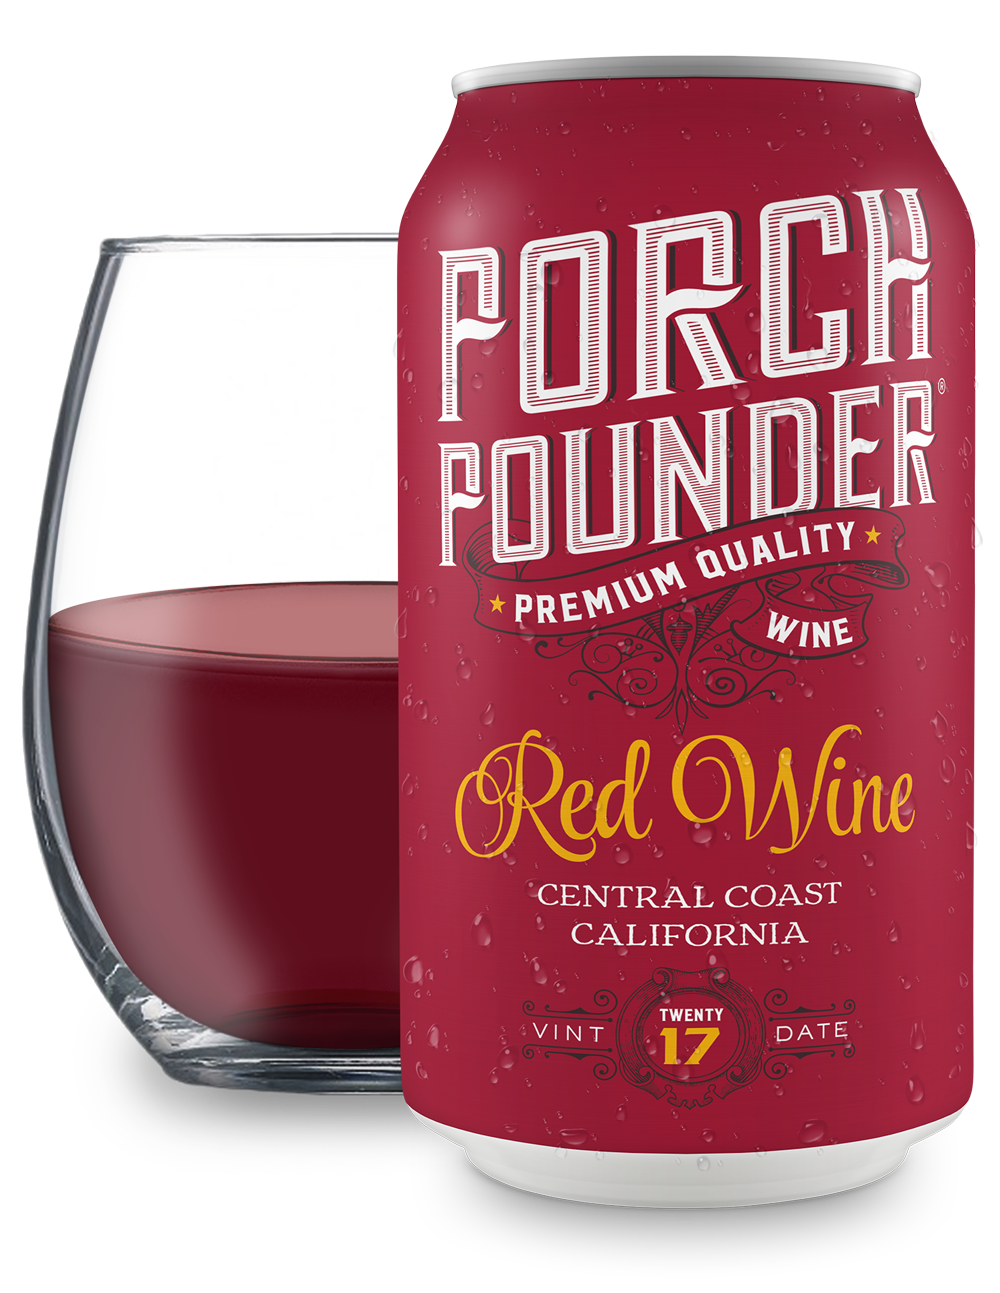 Porch Pounder Red Wine